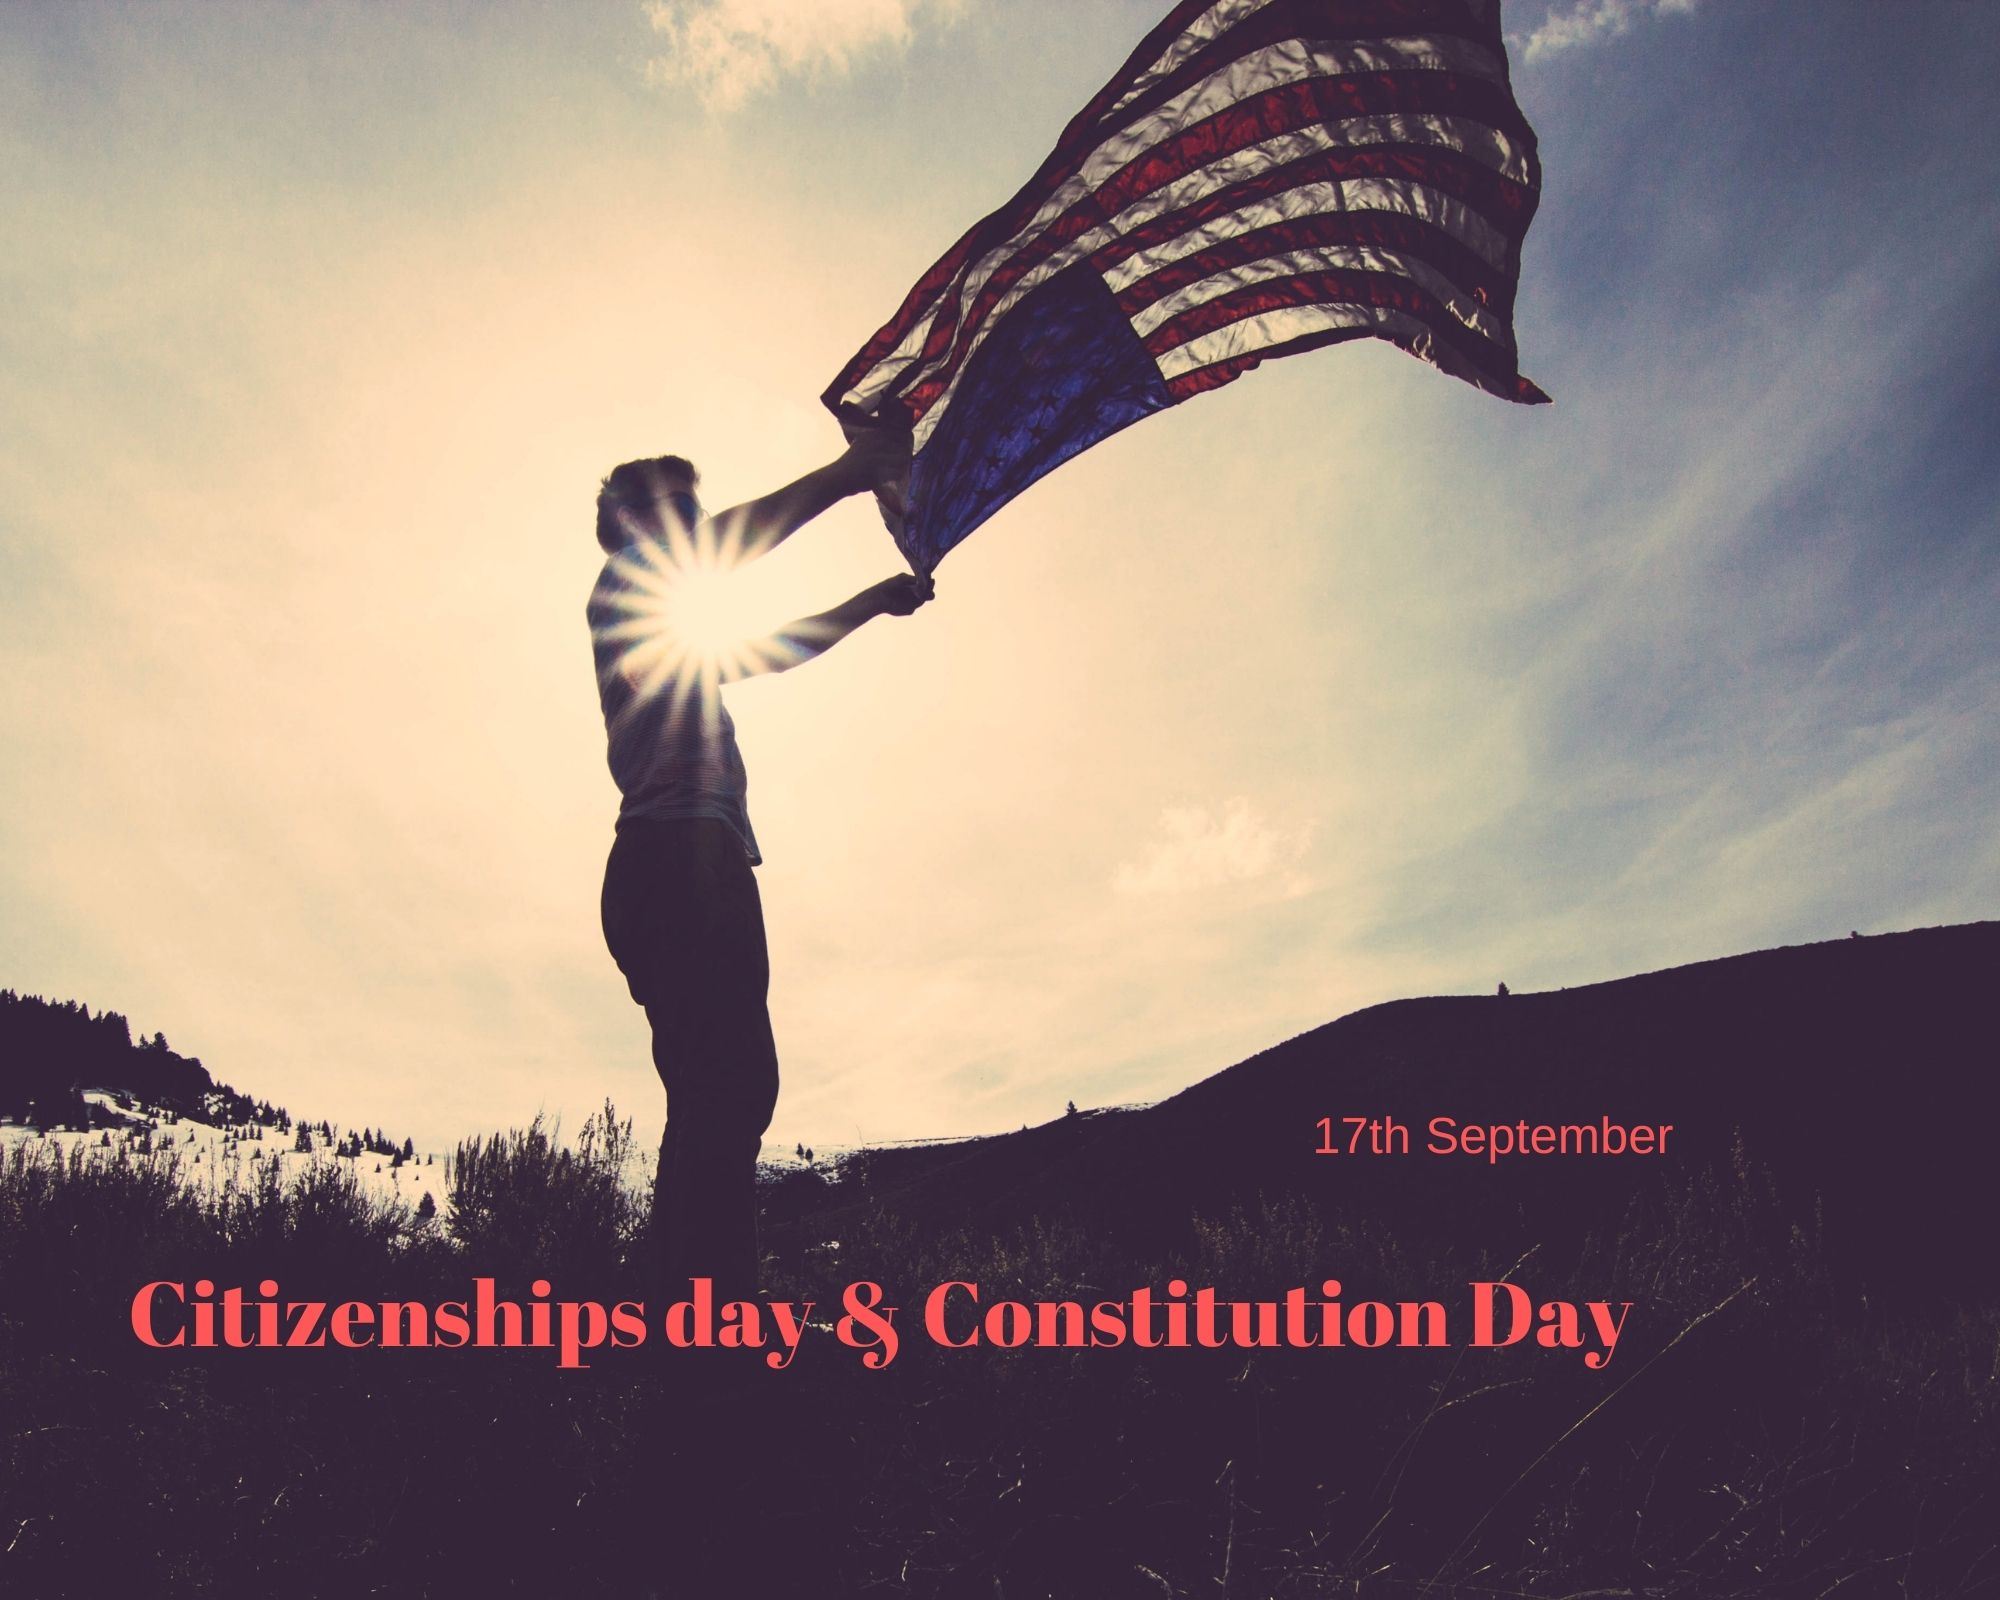 Citizenships day & Constitution Day